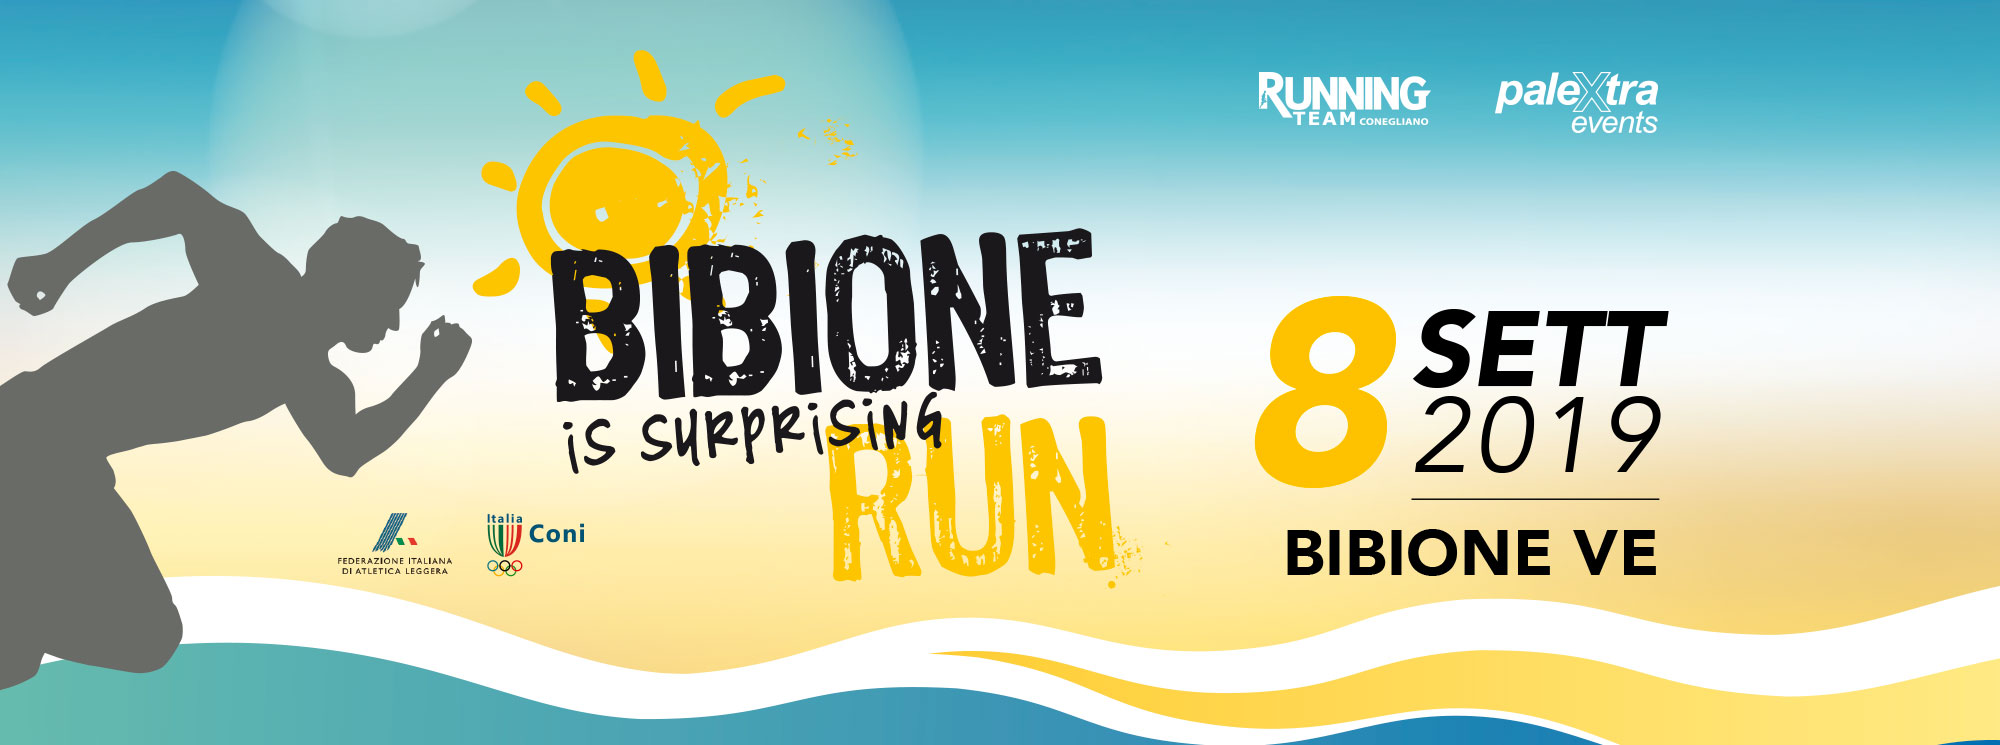 Bibione is Surprising Run 2019